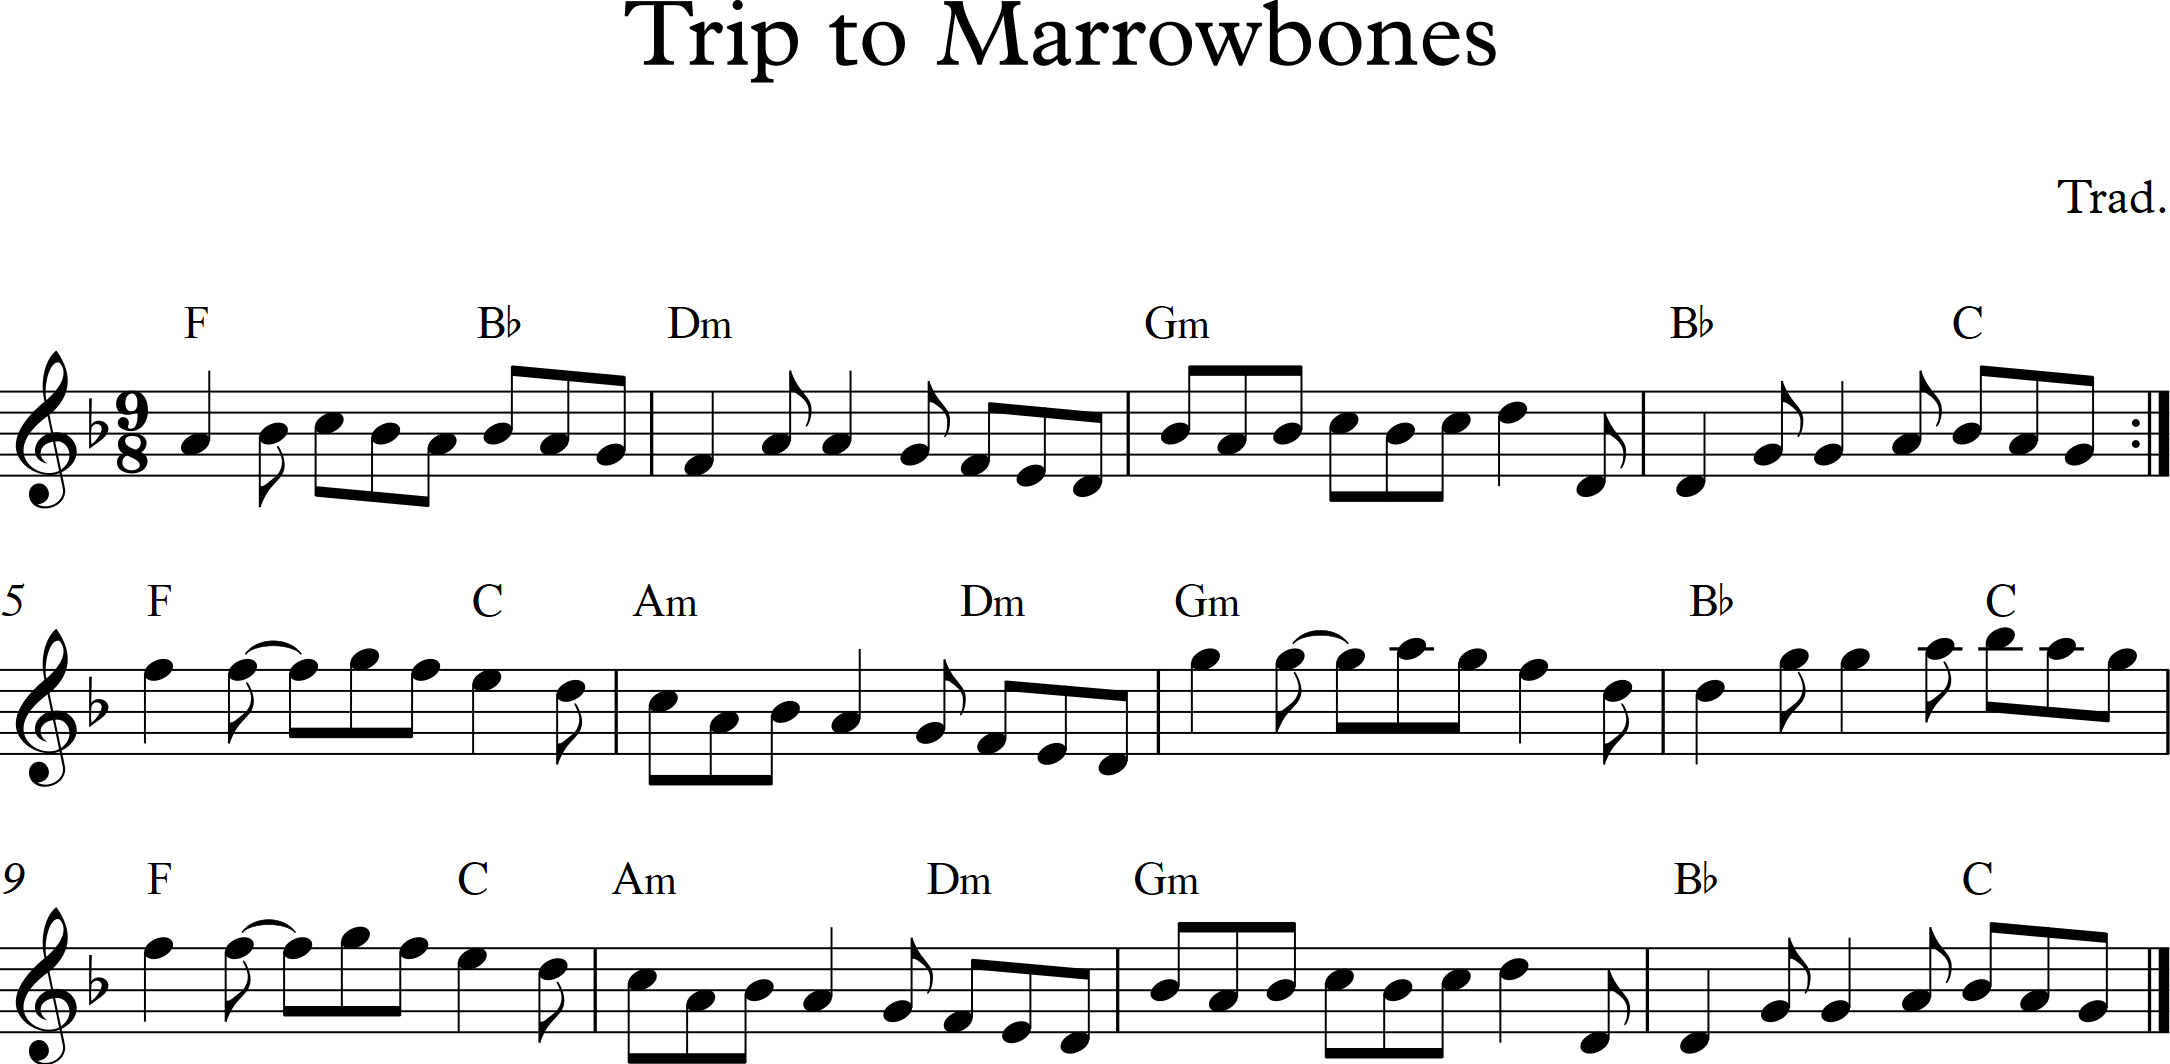 Trip to Marrowbones